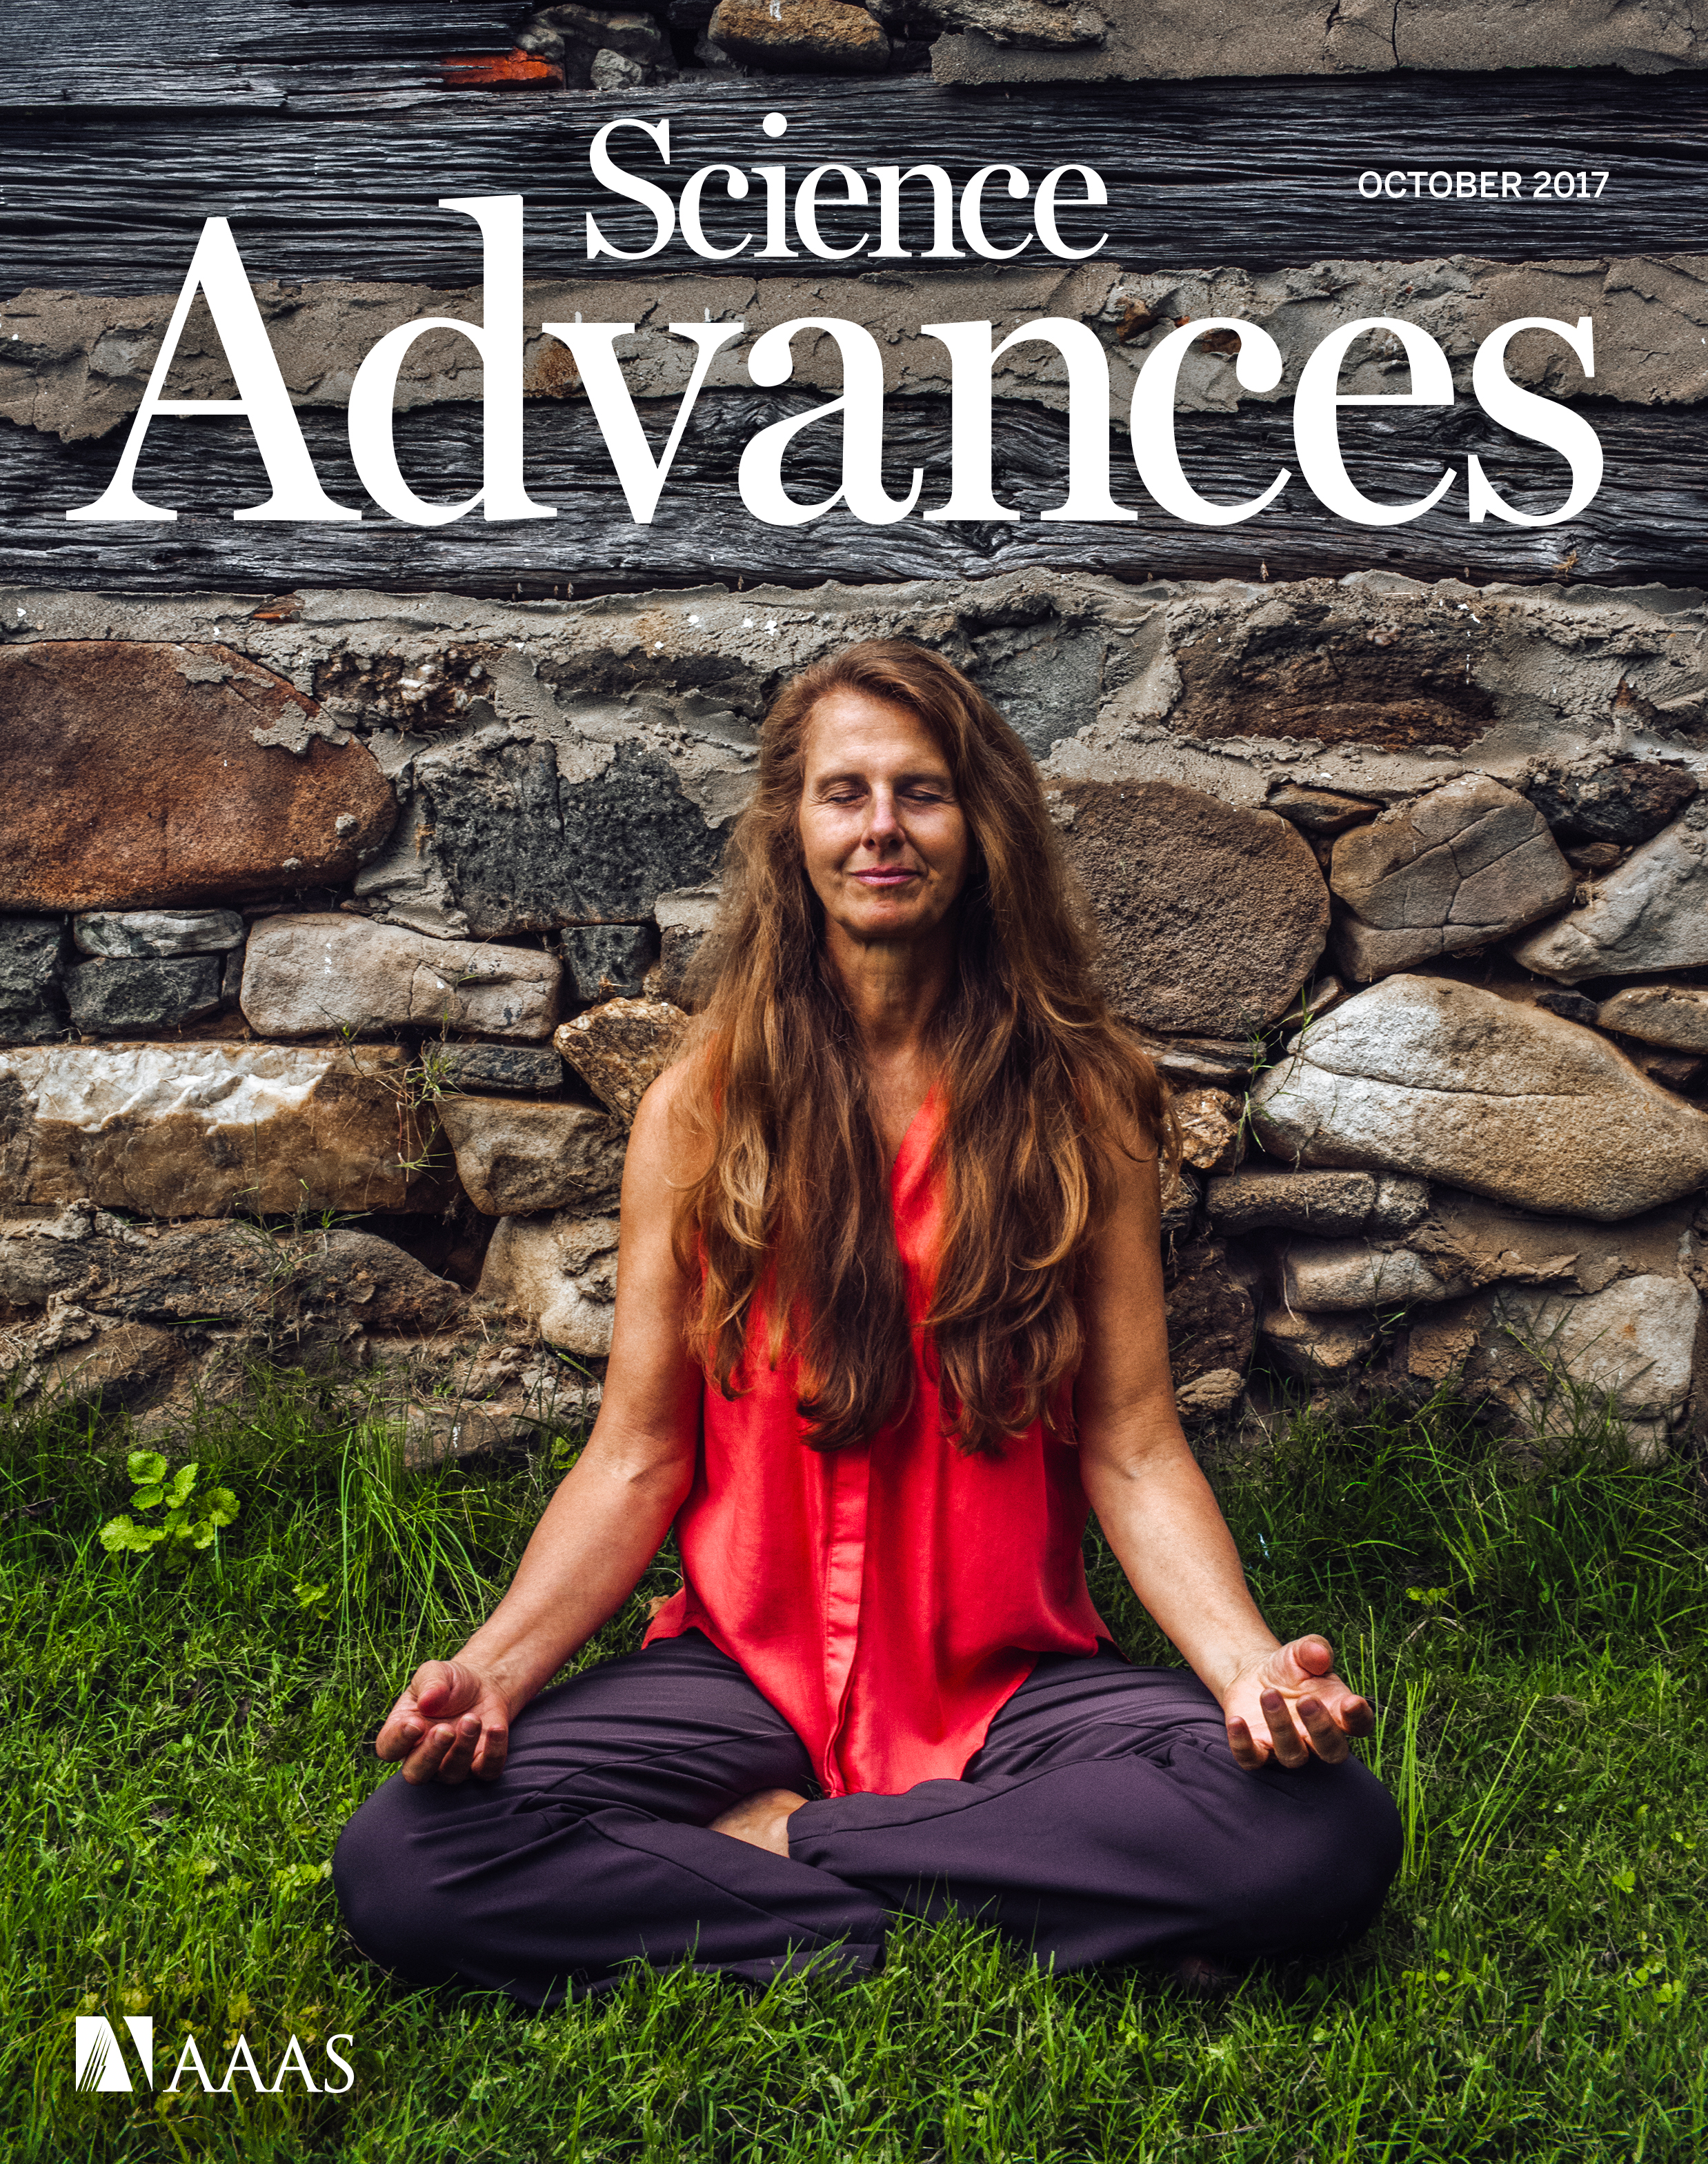 Dr. Deborah Norris , Founder of  The Mindfulness Center , graces the cover of  Science Advances Magazine.